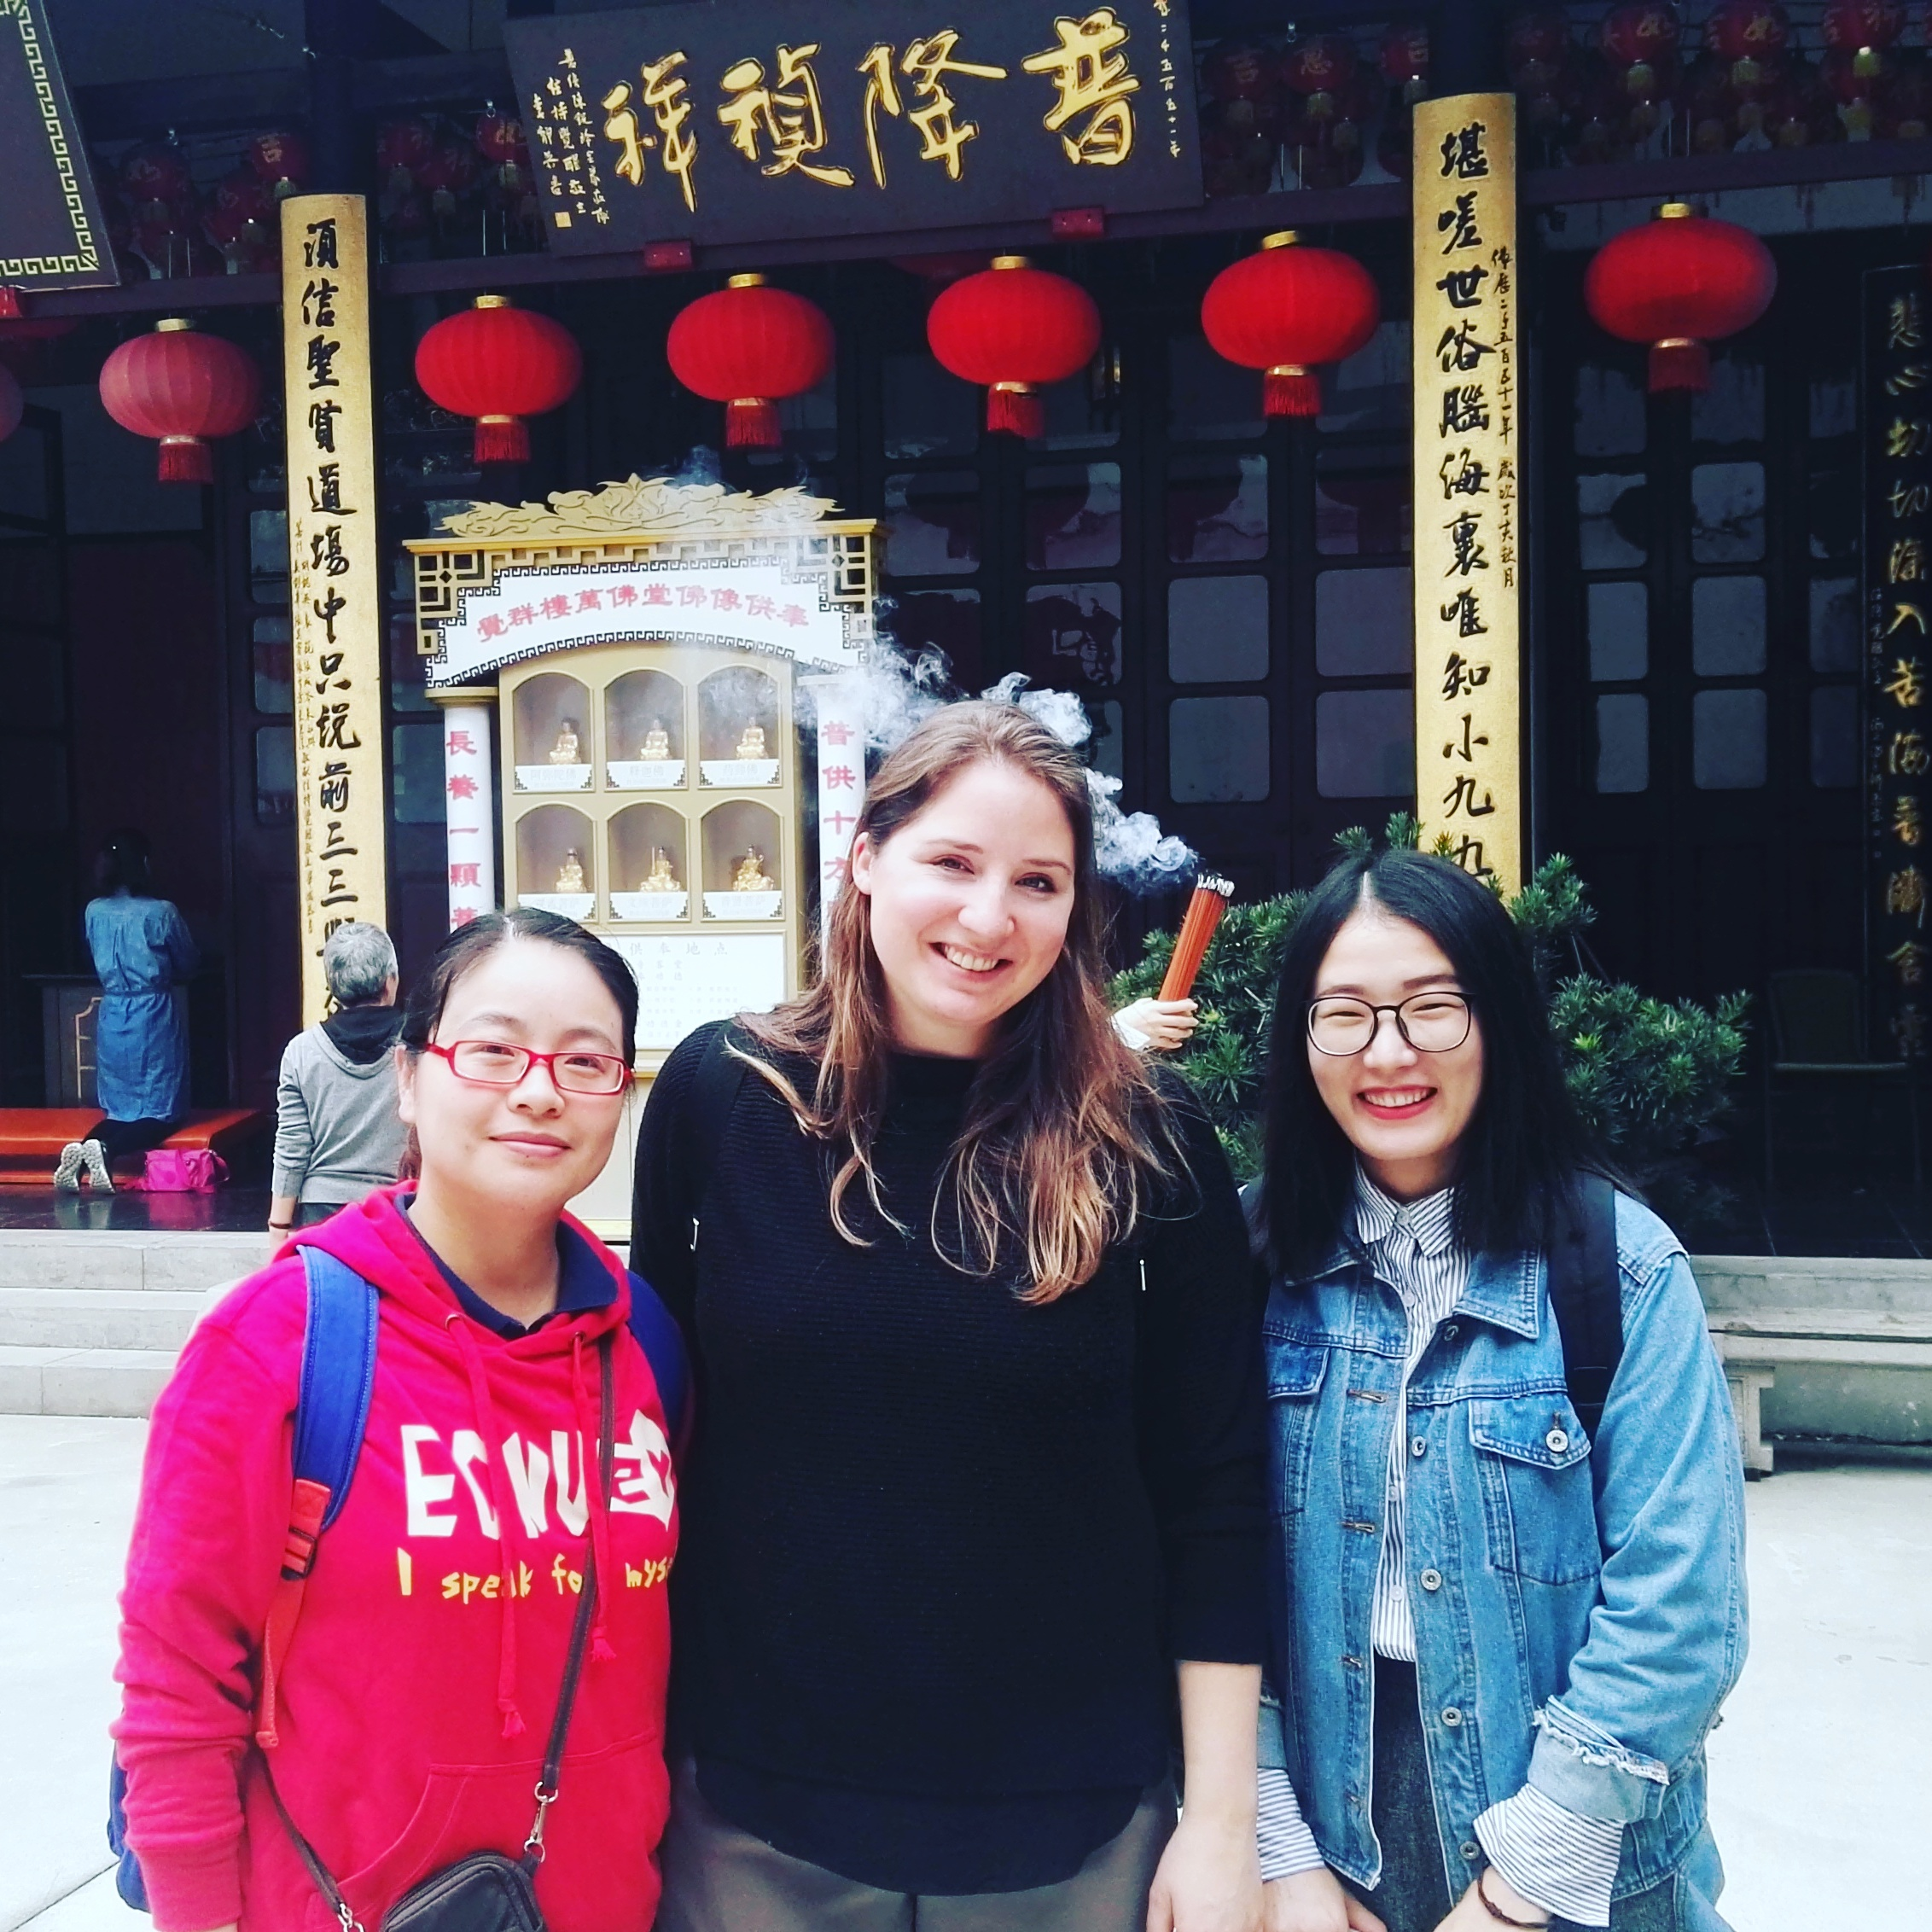 PhD student Ranveig Falch in Shanghai, China